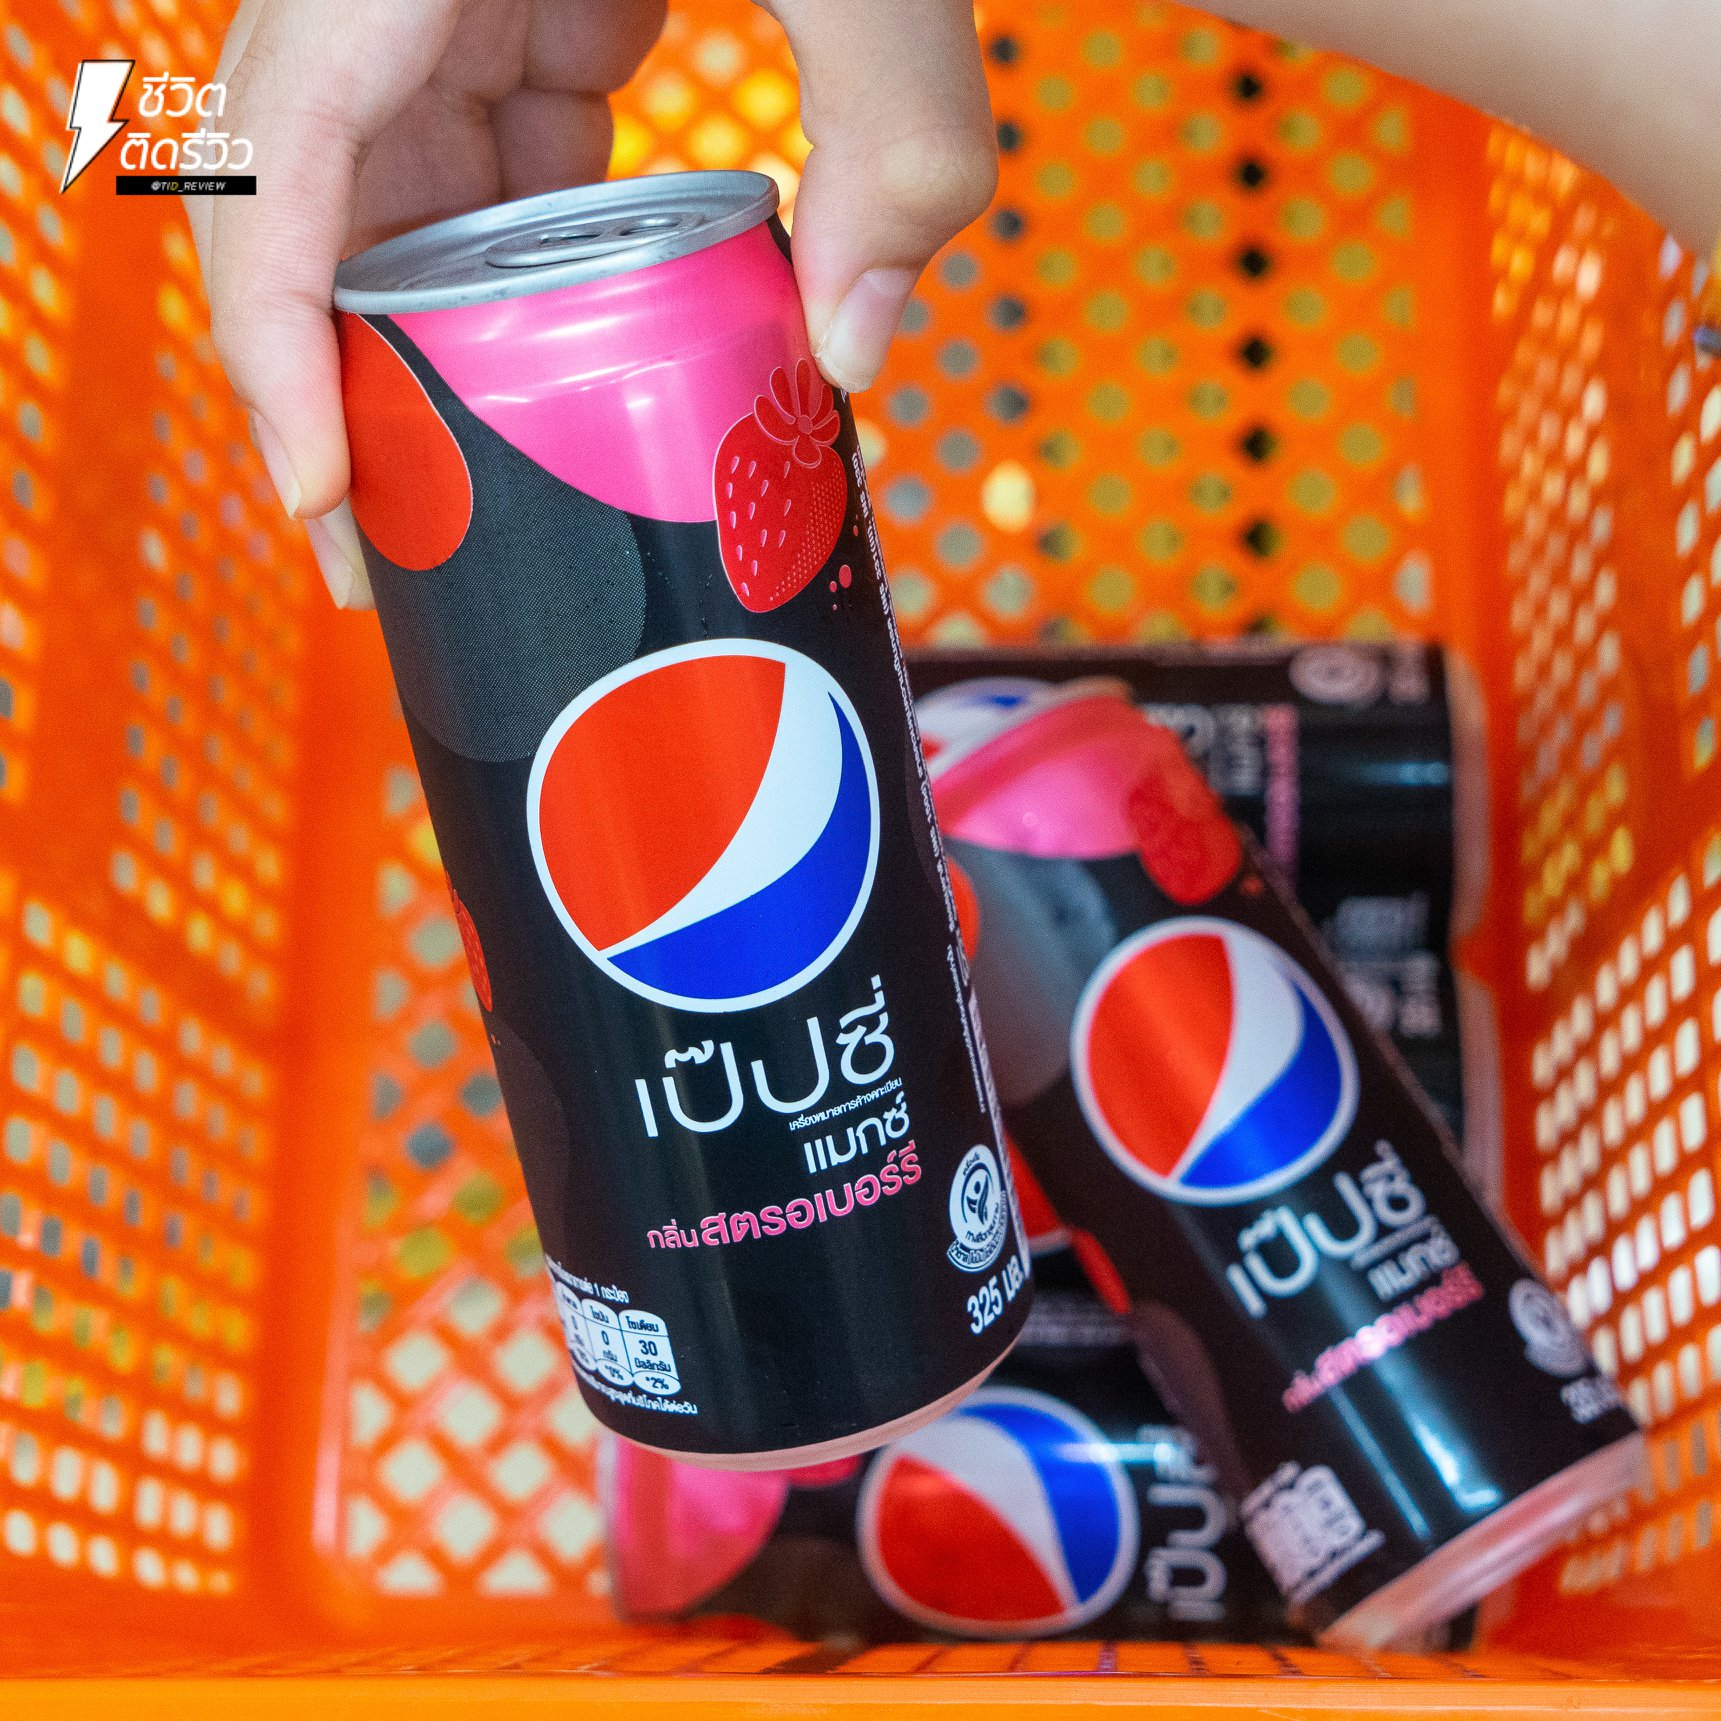 Strawberry Pepsi Max Debuts In Thailand, Sugarless Soda Now In Stores Nationwide